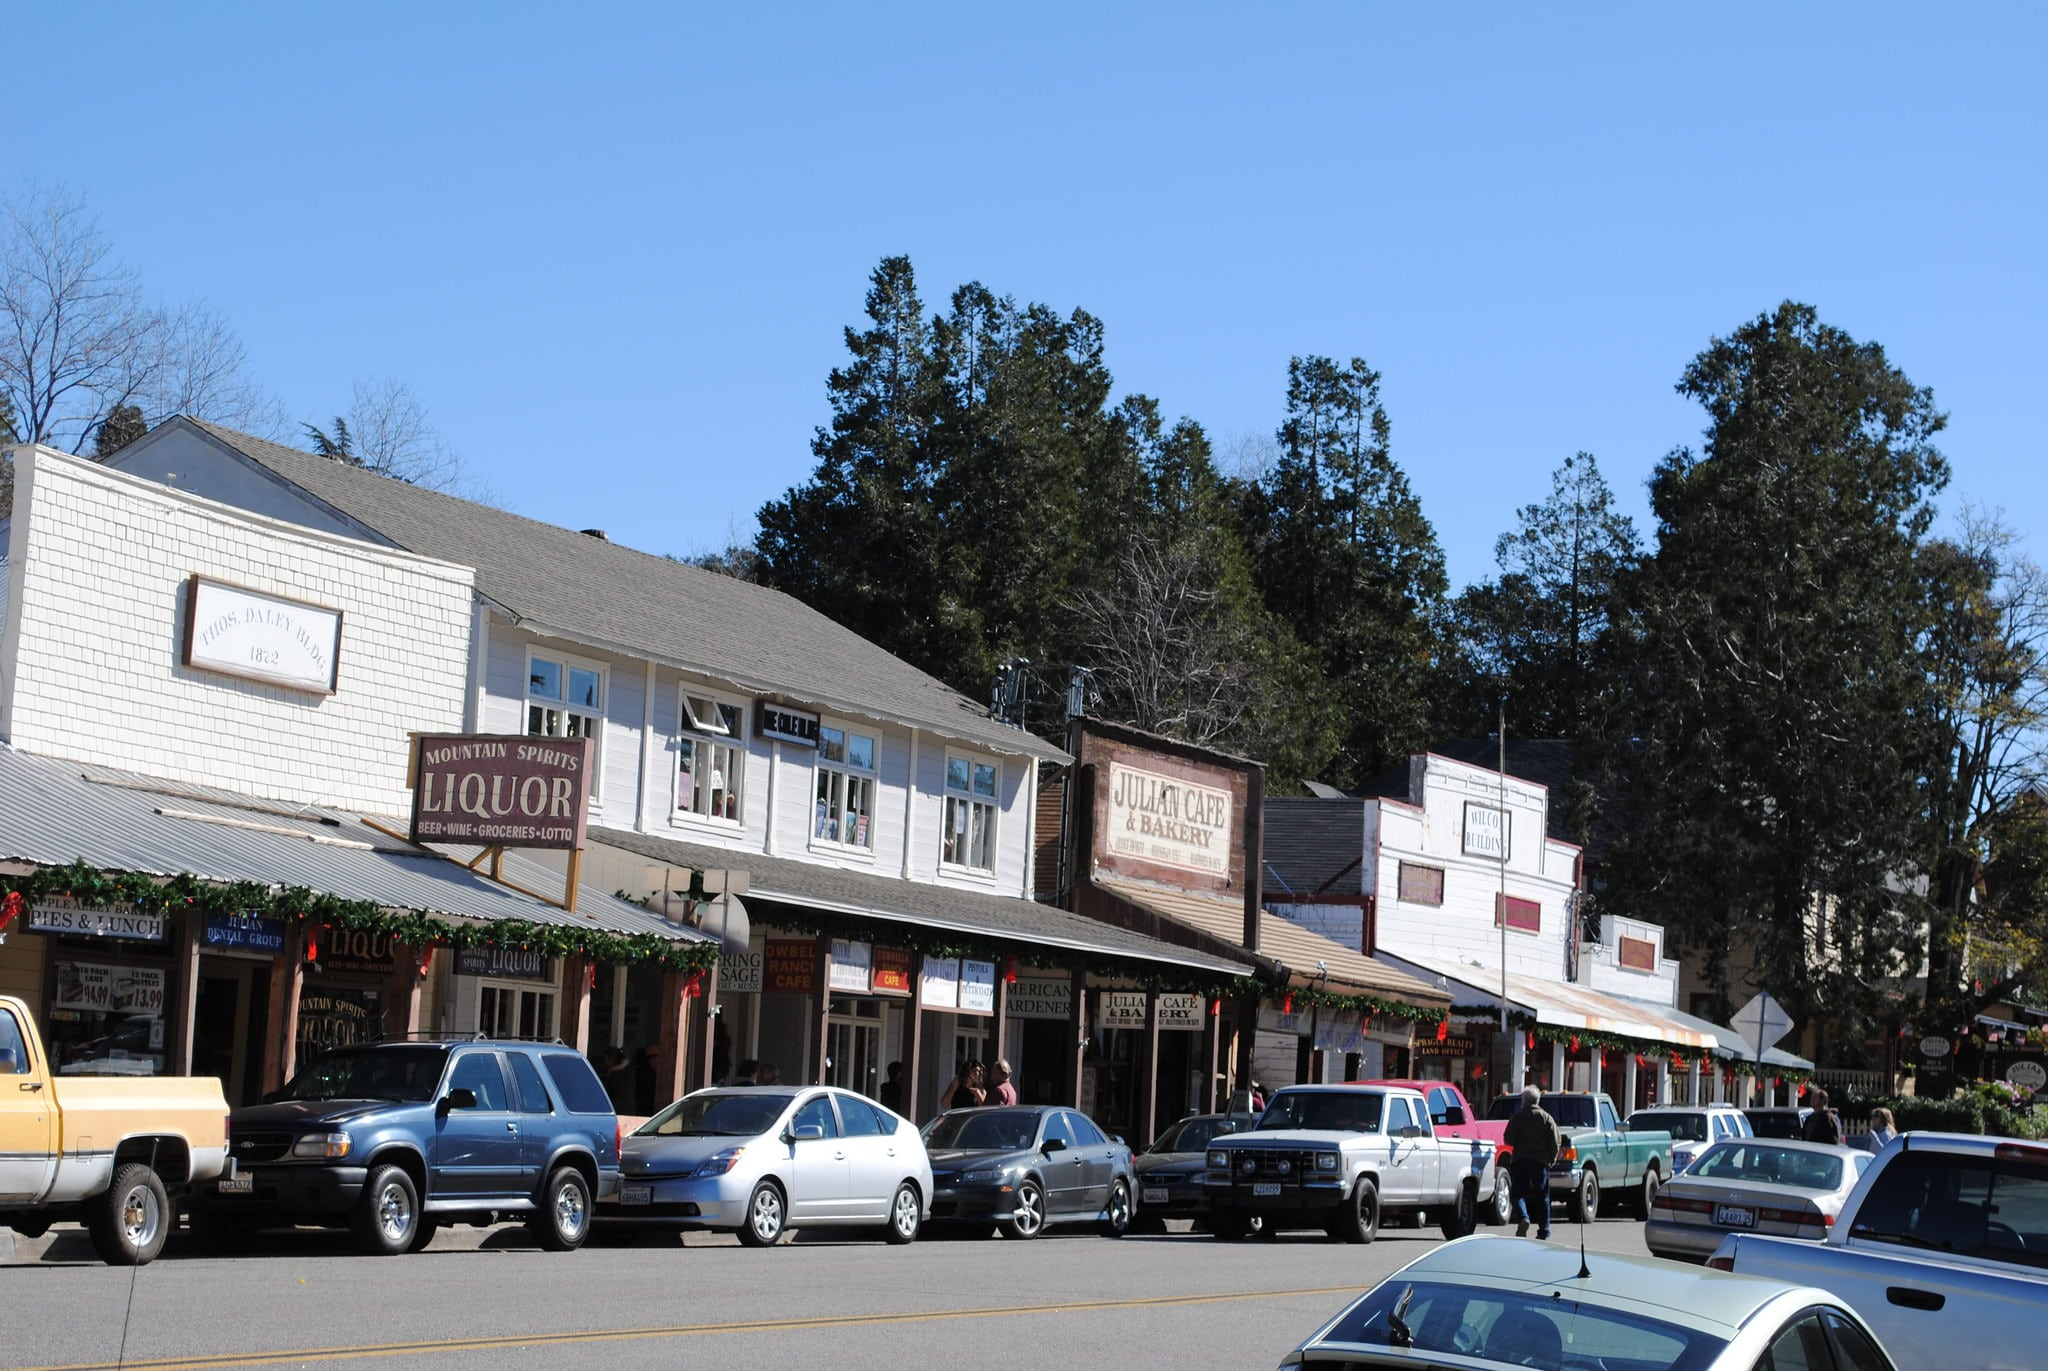 Things to do Julian, California include wandering the small downtown area.